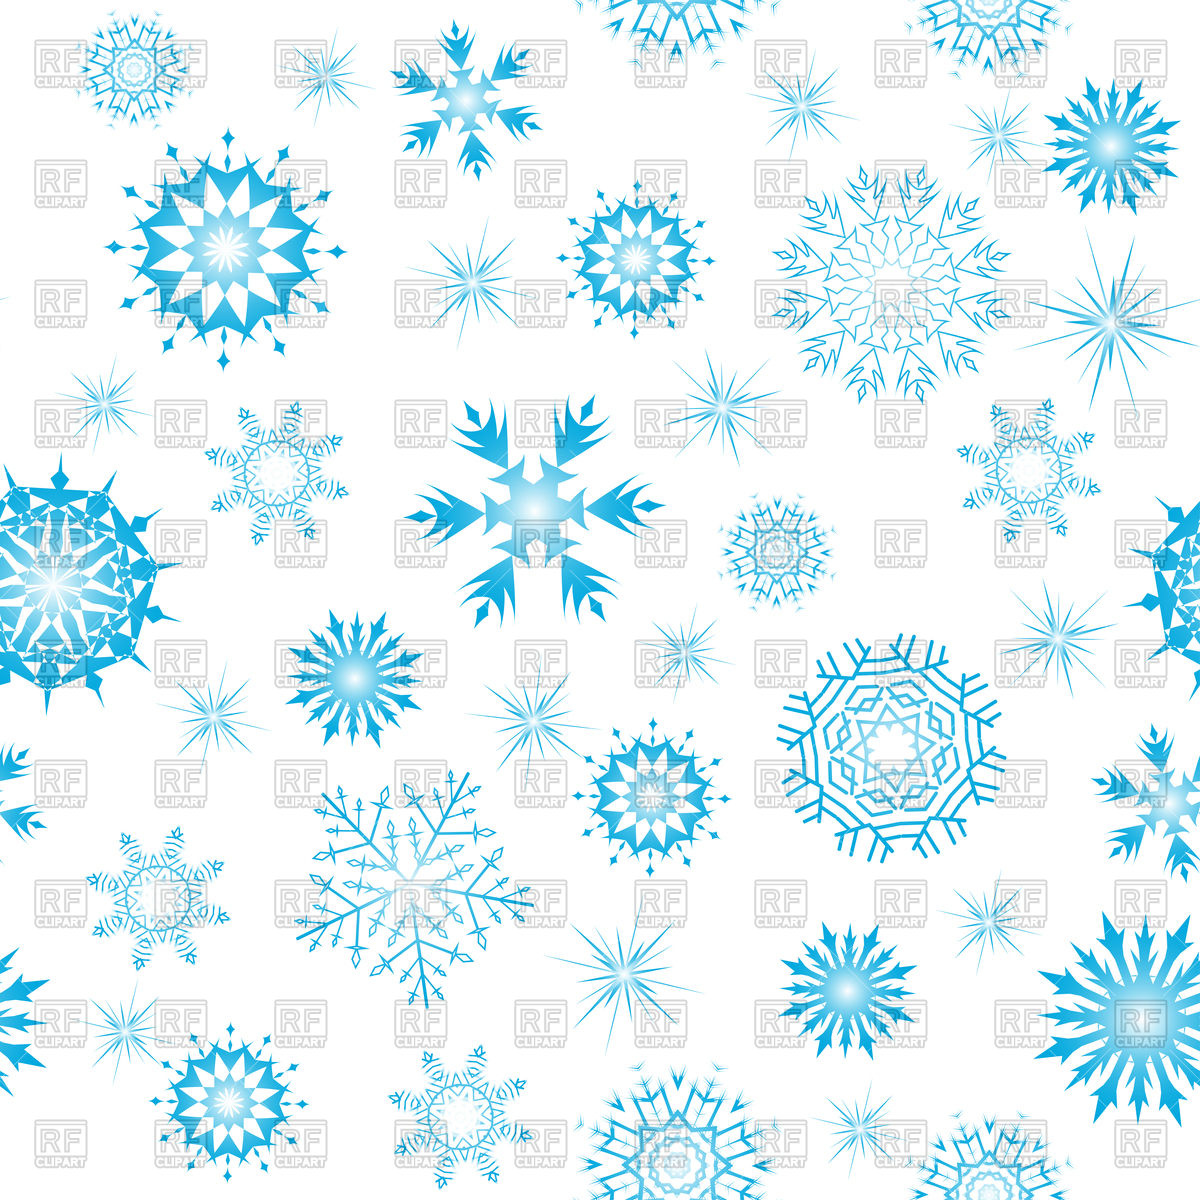 Snowflake background clipart